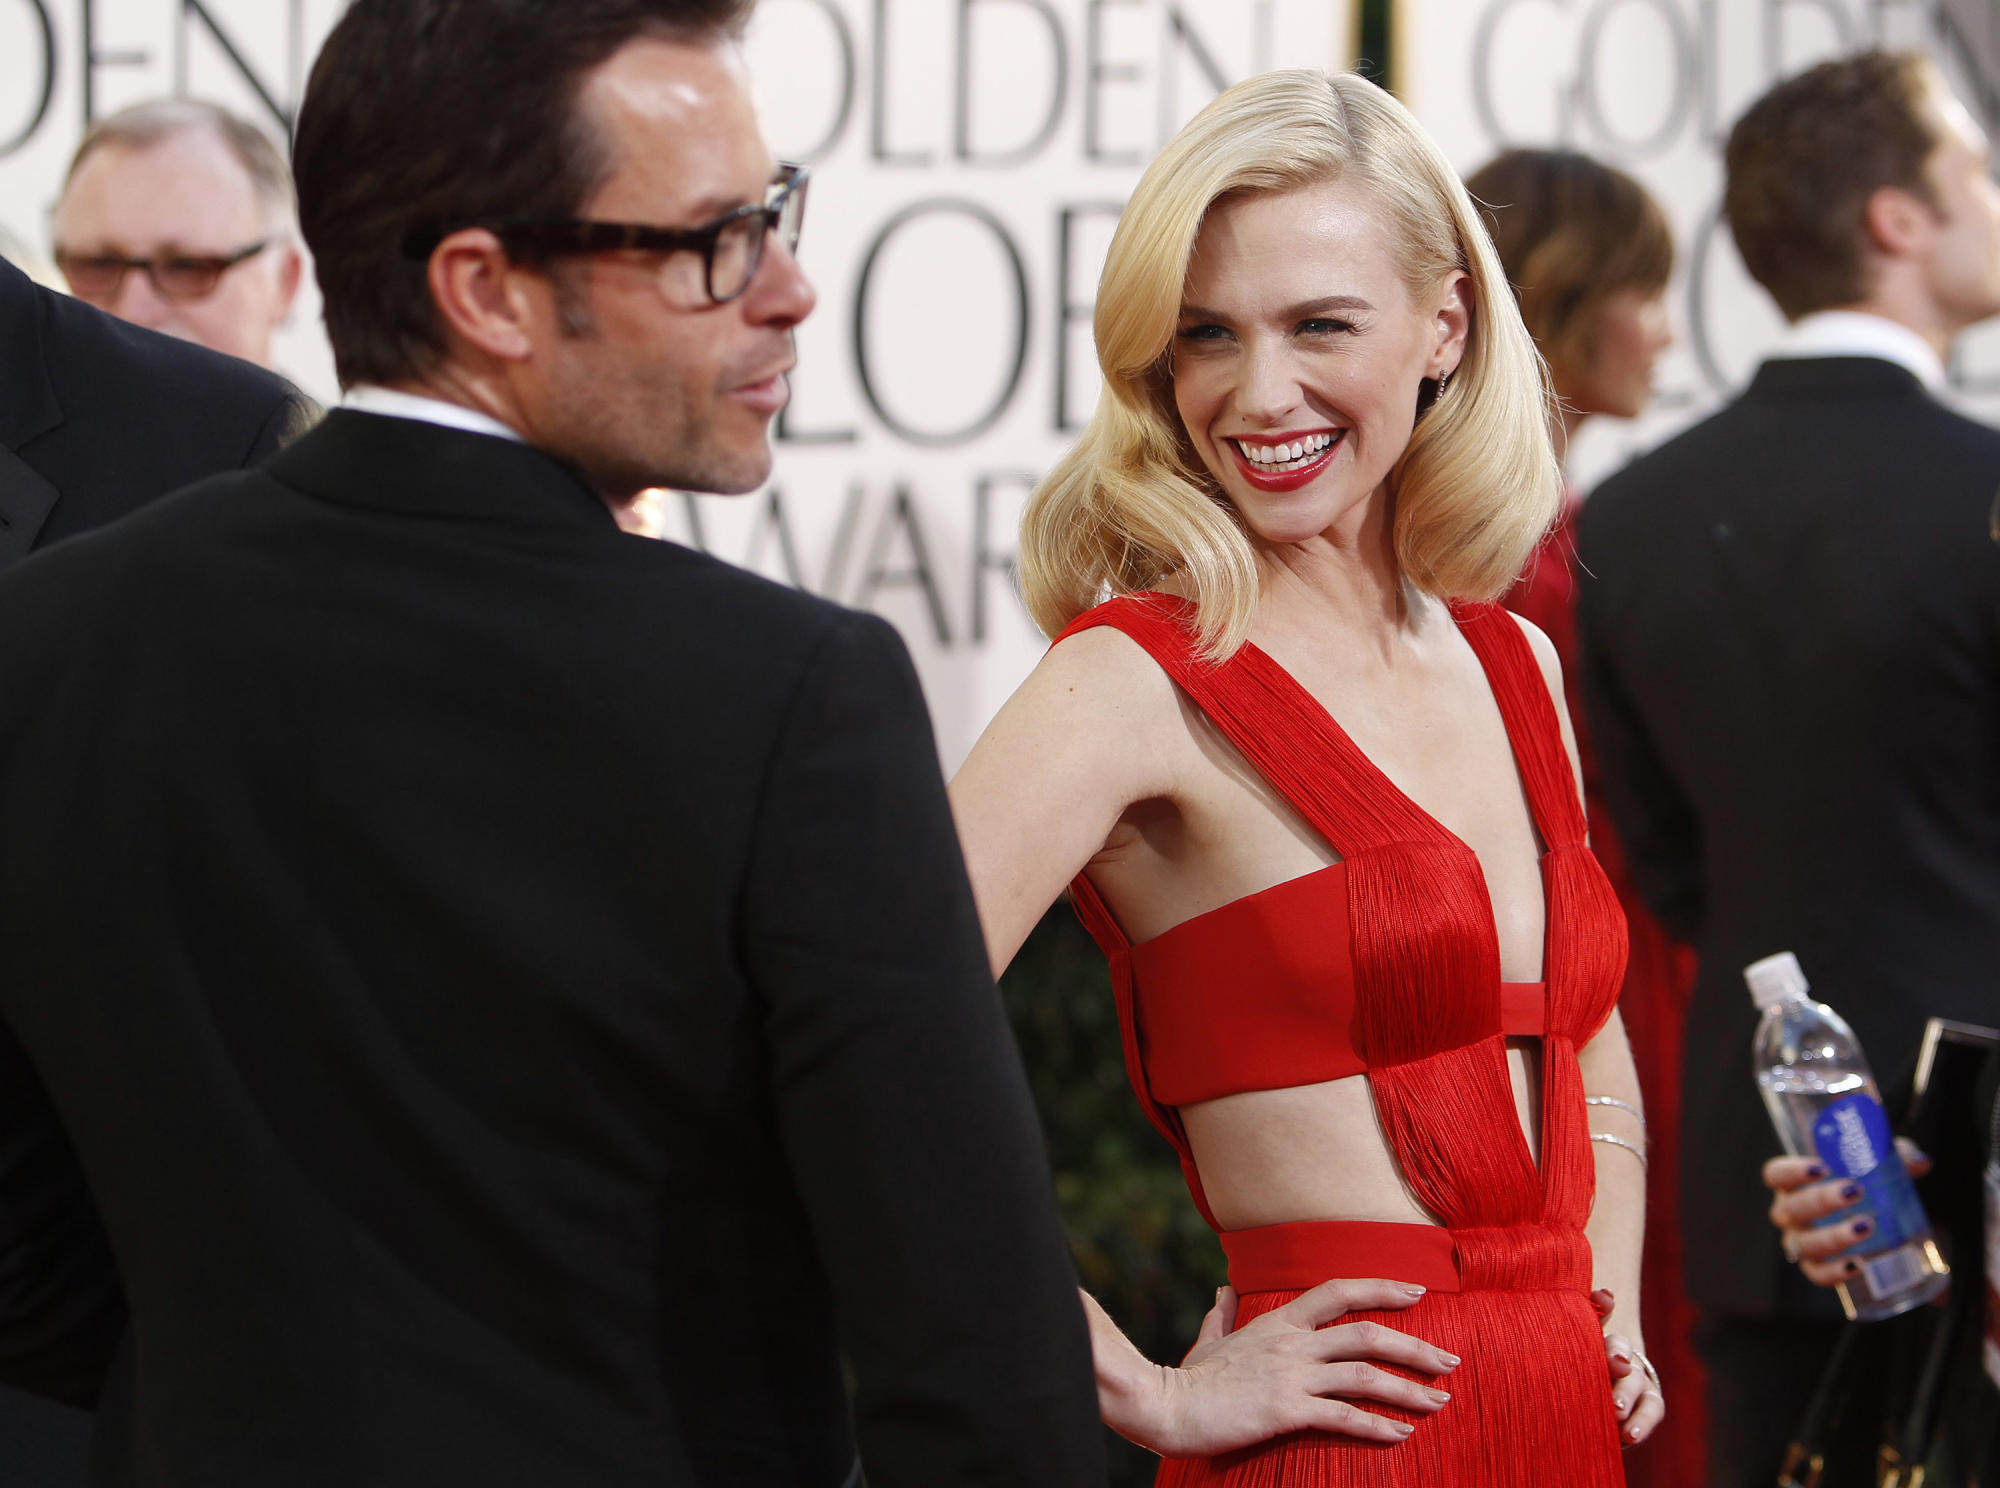 January Jones recycles plunging Versace gown from 2011 Golden Globes - Yahoo Entertainment